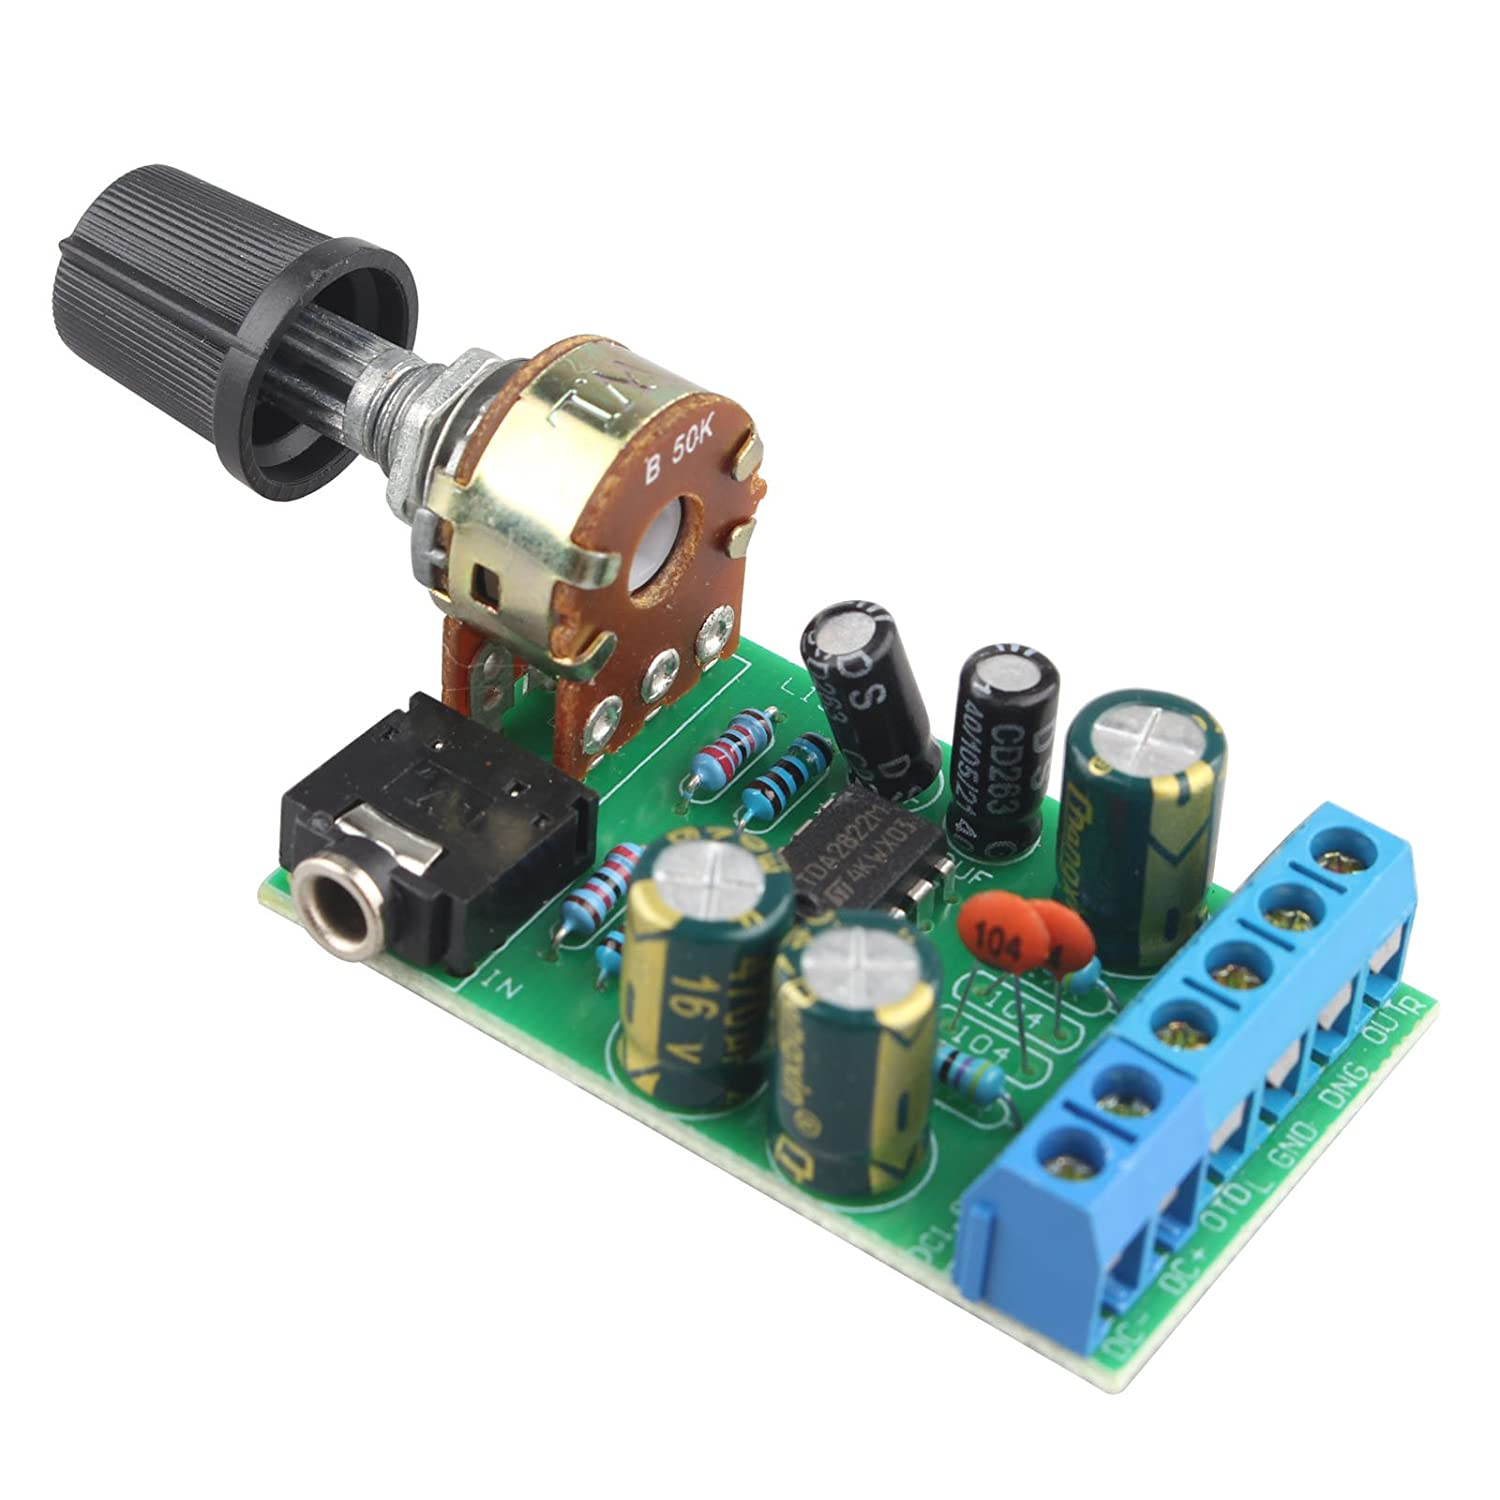 Dc18 12v Tda2822m Amplifier 2 Channels Stereo 35mm Tda2822 Audio Power Circuit Mini Aux Amp Board Module Car Electronics